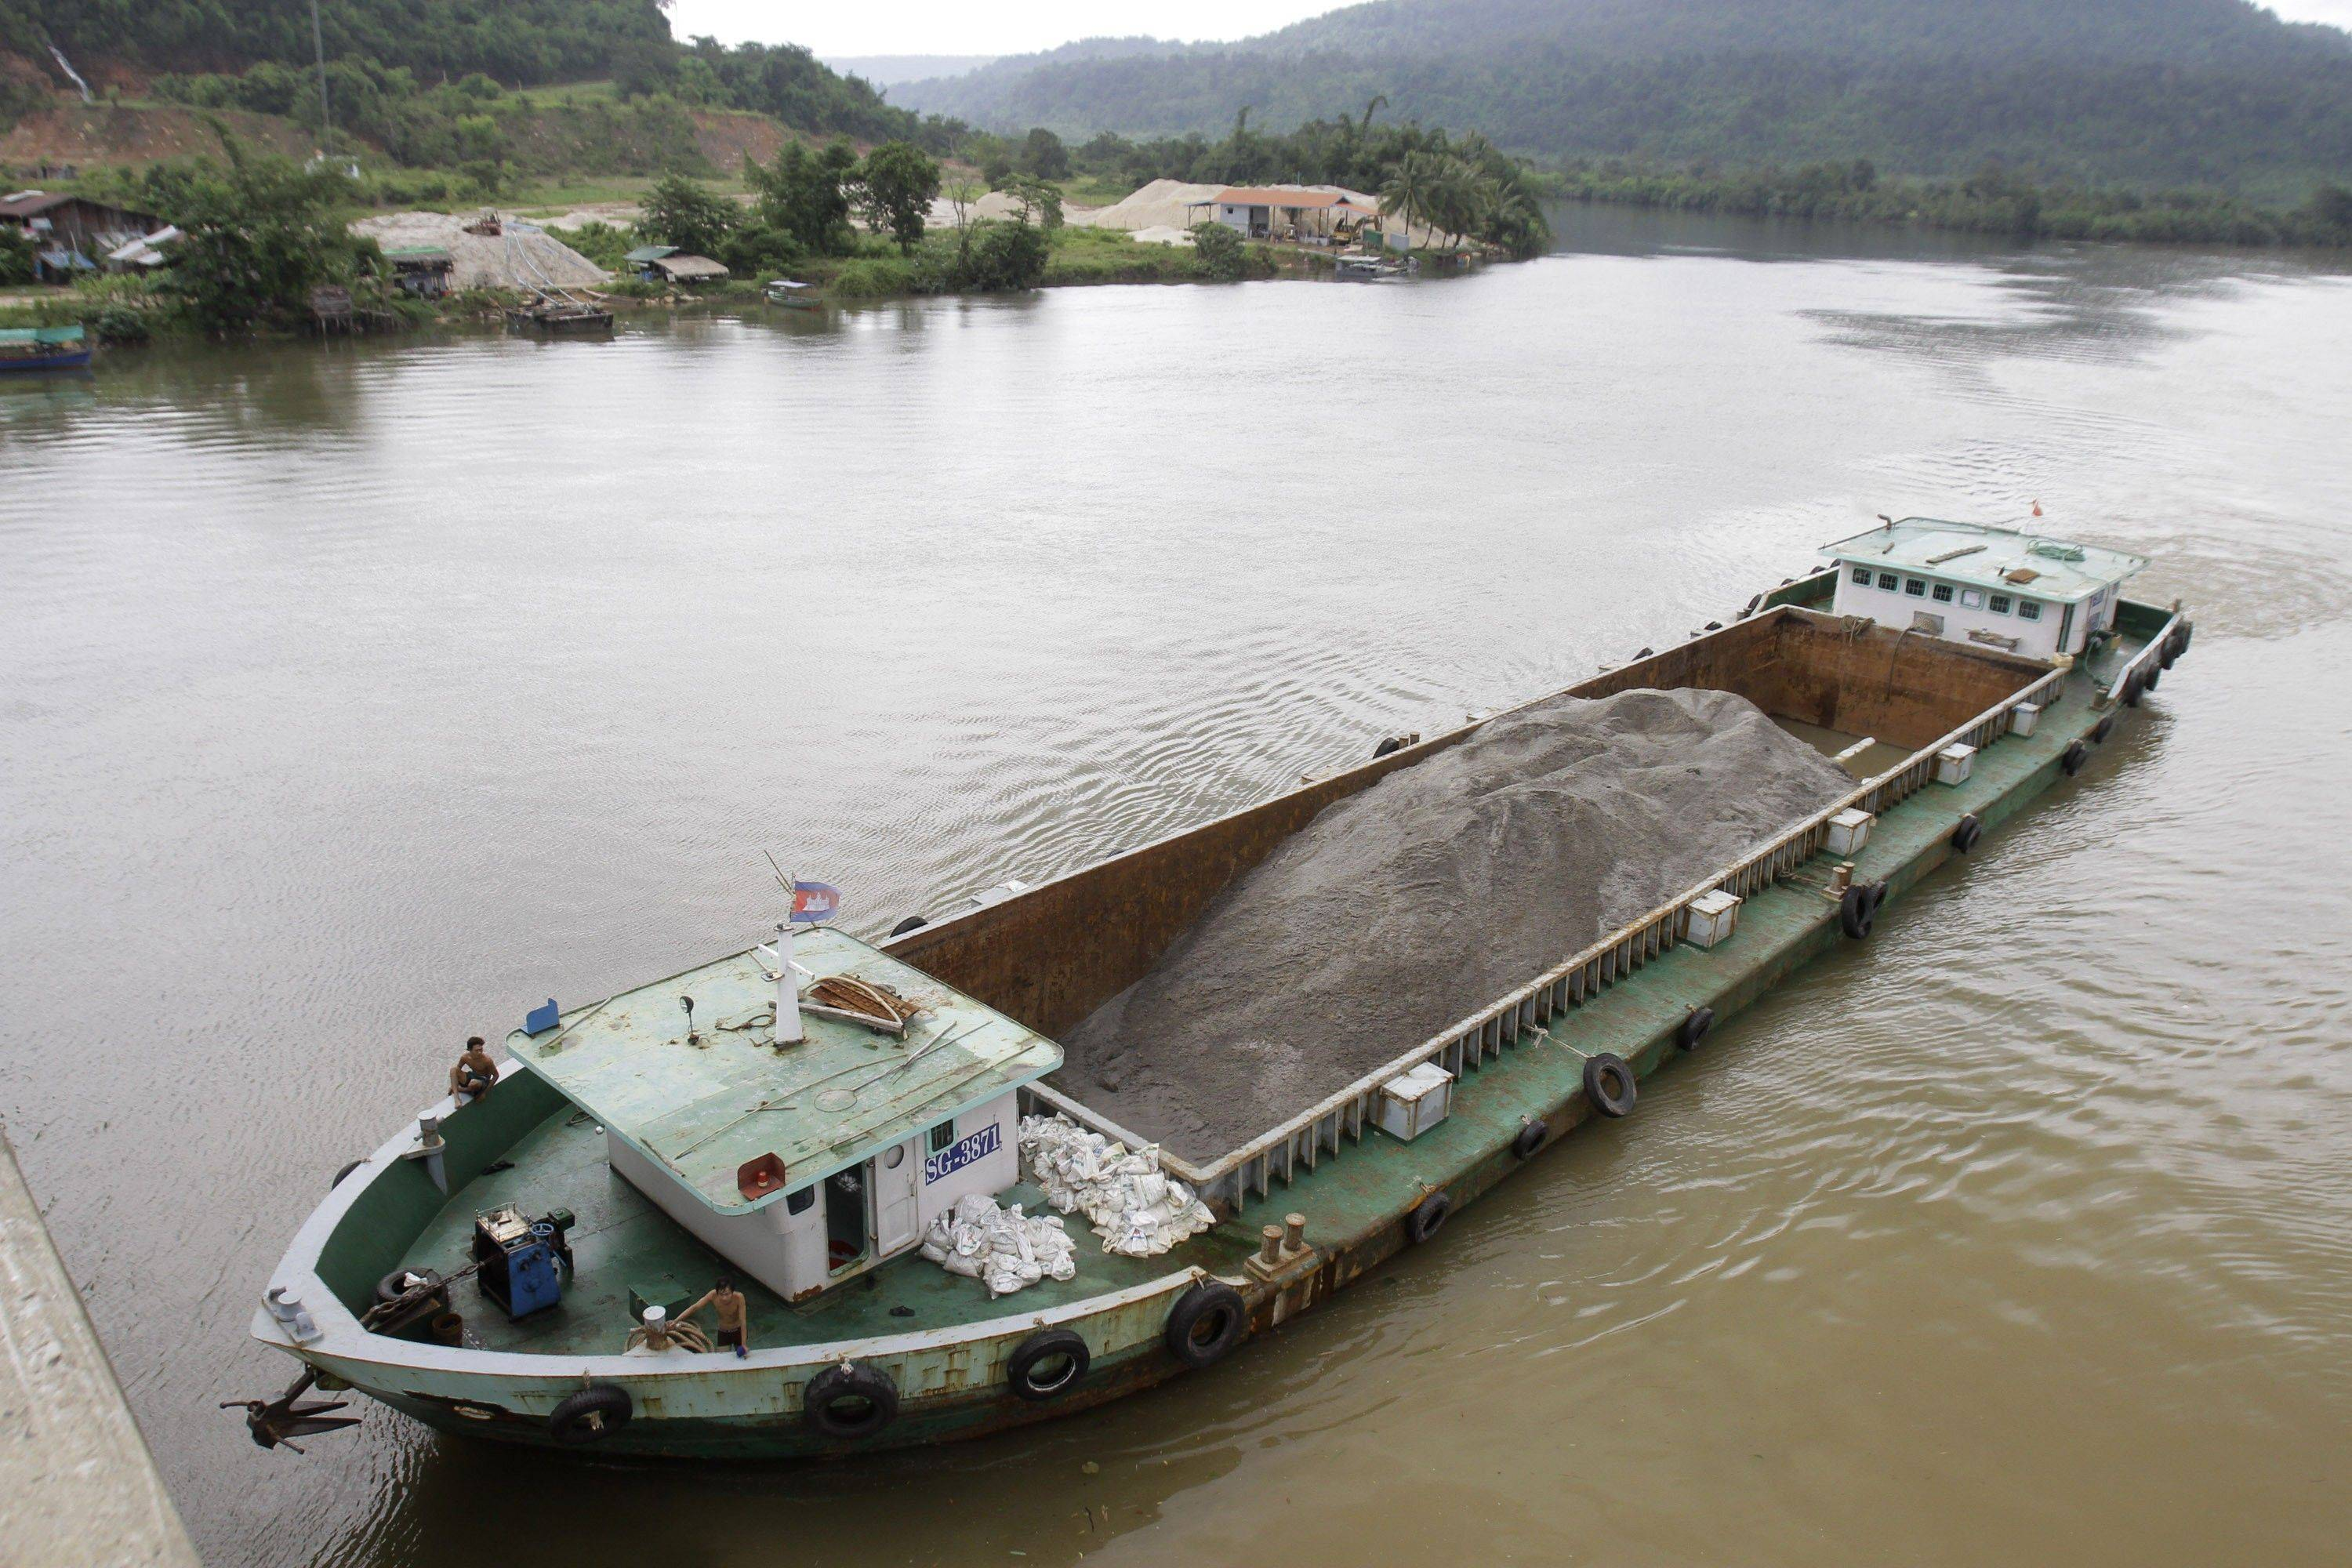 Vietnamese vessel haulssand plies the Tatai River in southwestern Cambodia. Cambodia is exporting vast amounts of sand for land reclamation and construction projects in Singapore.